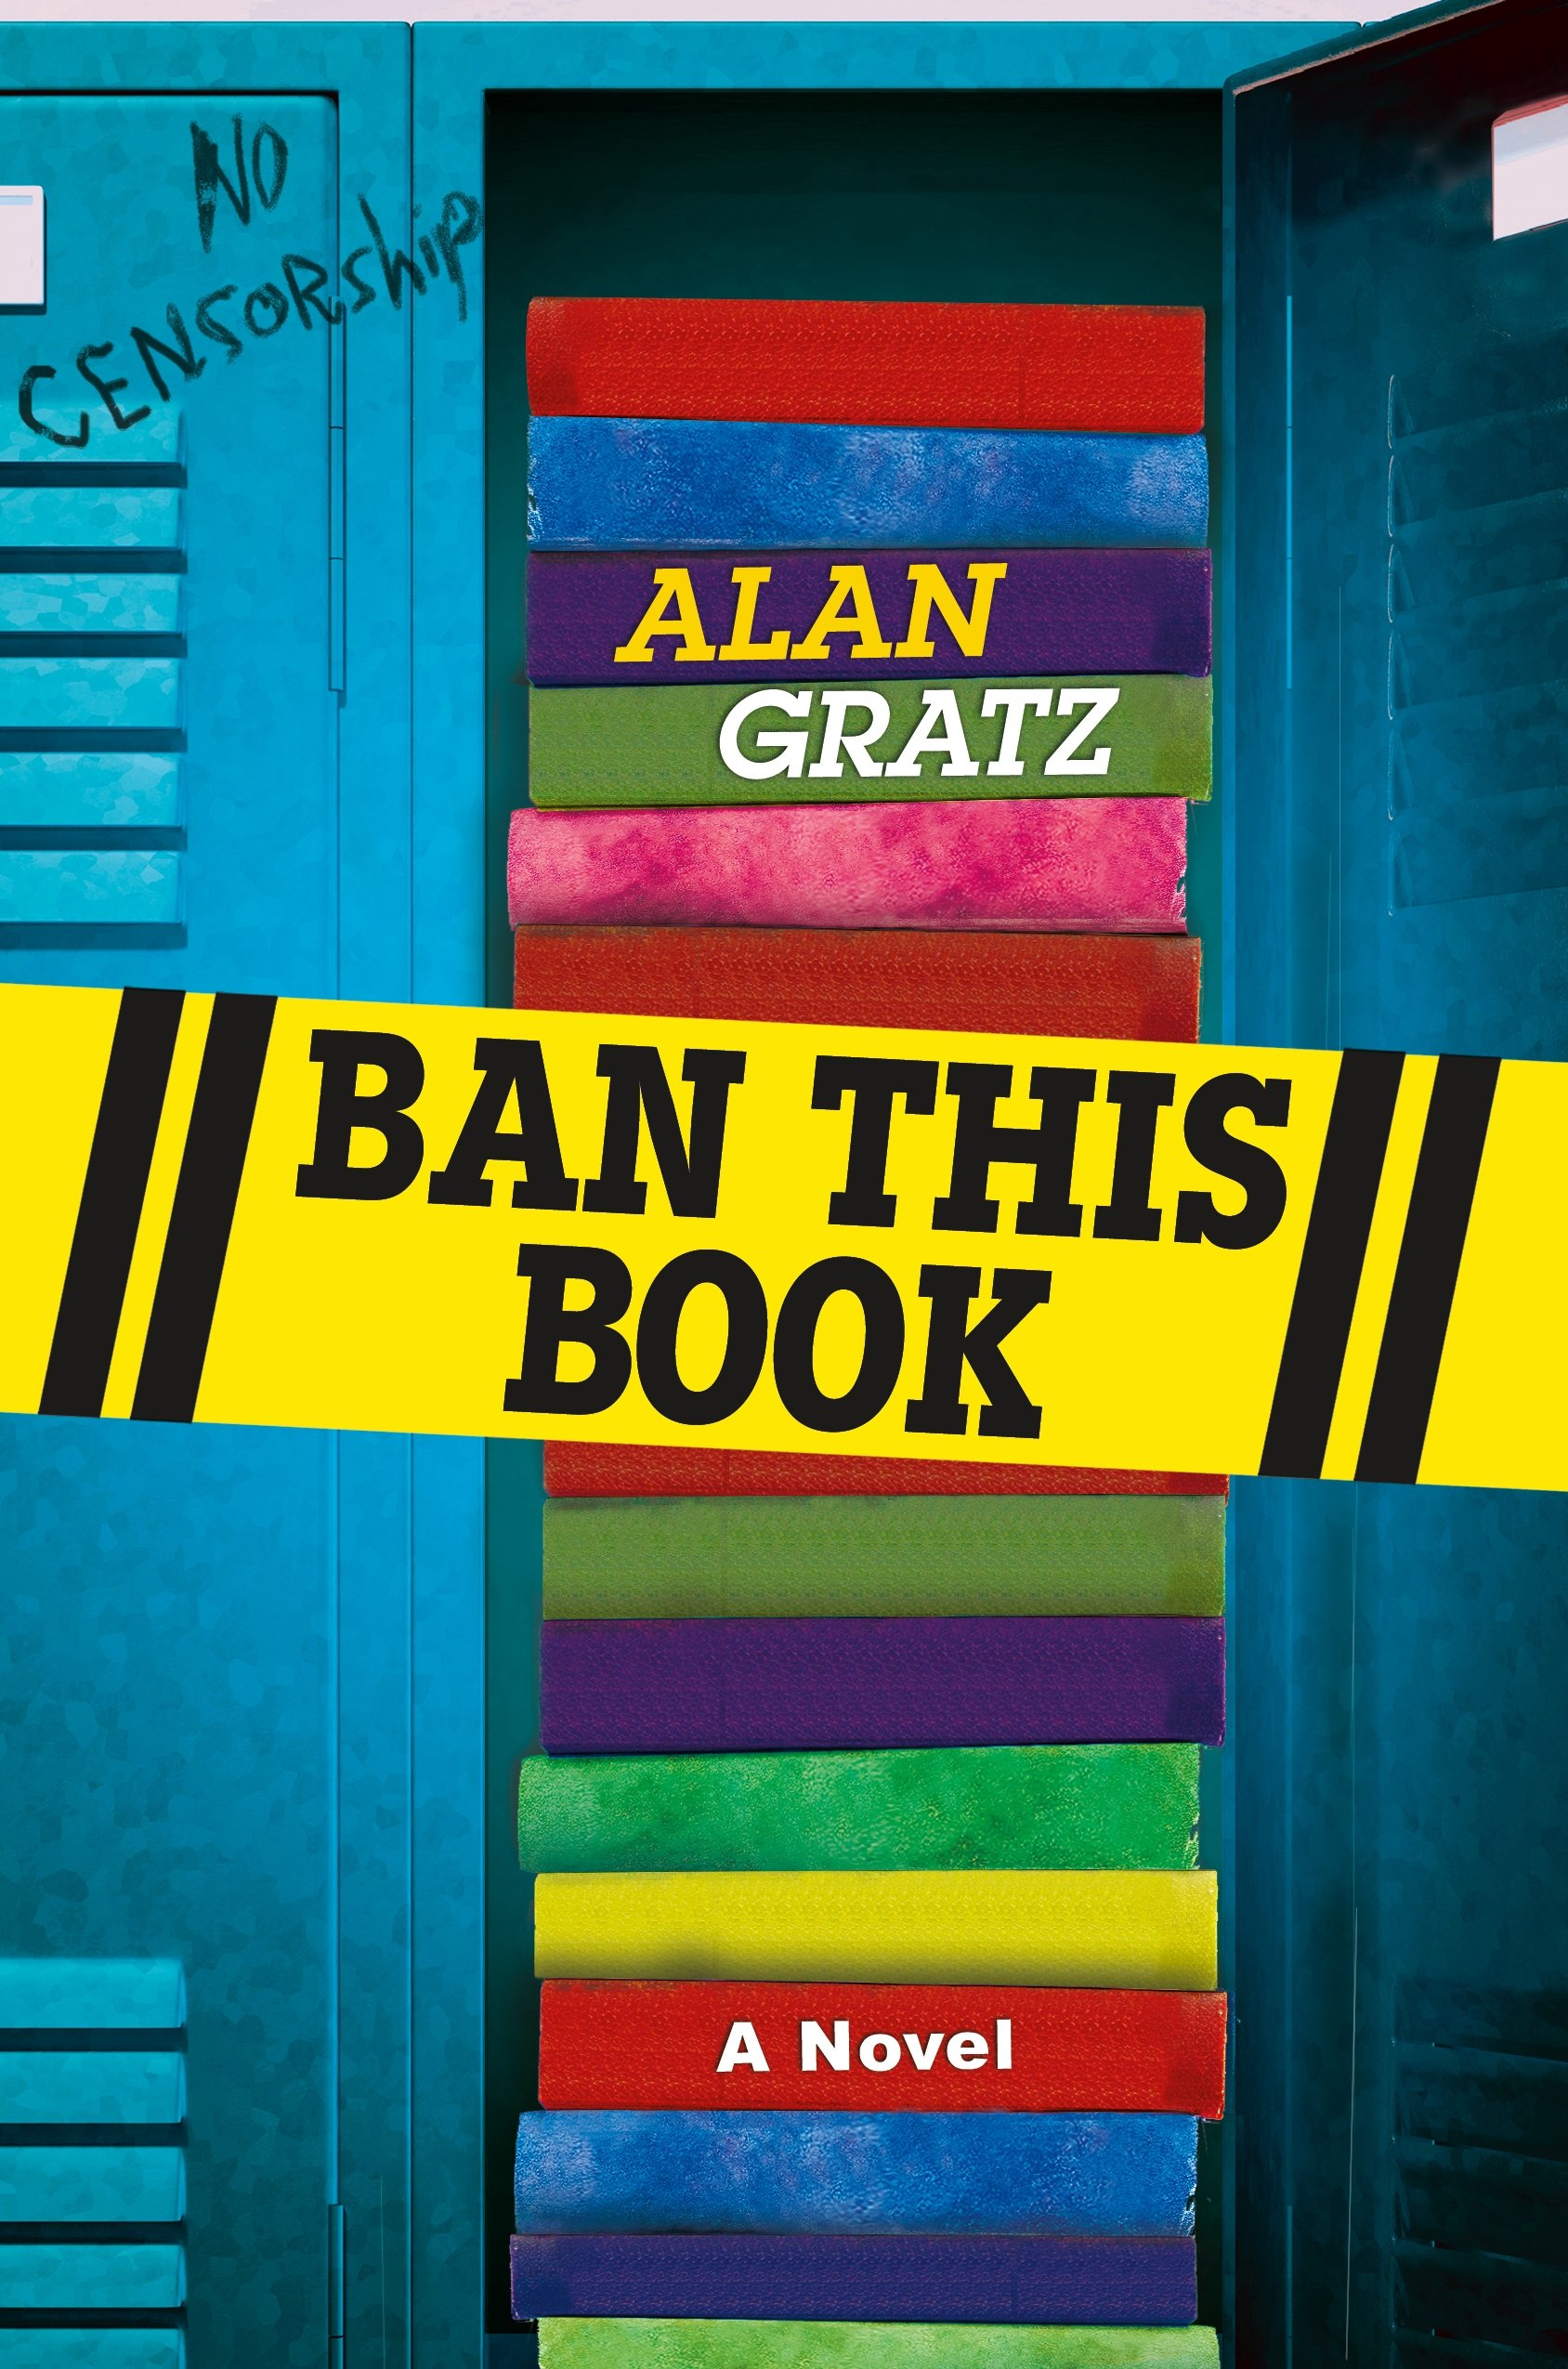 Buy Ban This Book: A Novel Book Online at Low Prices in India | Ban This  Book: A Novel Reviews & Ratings - Amazon.in